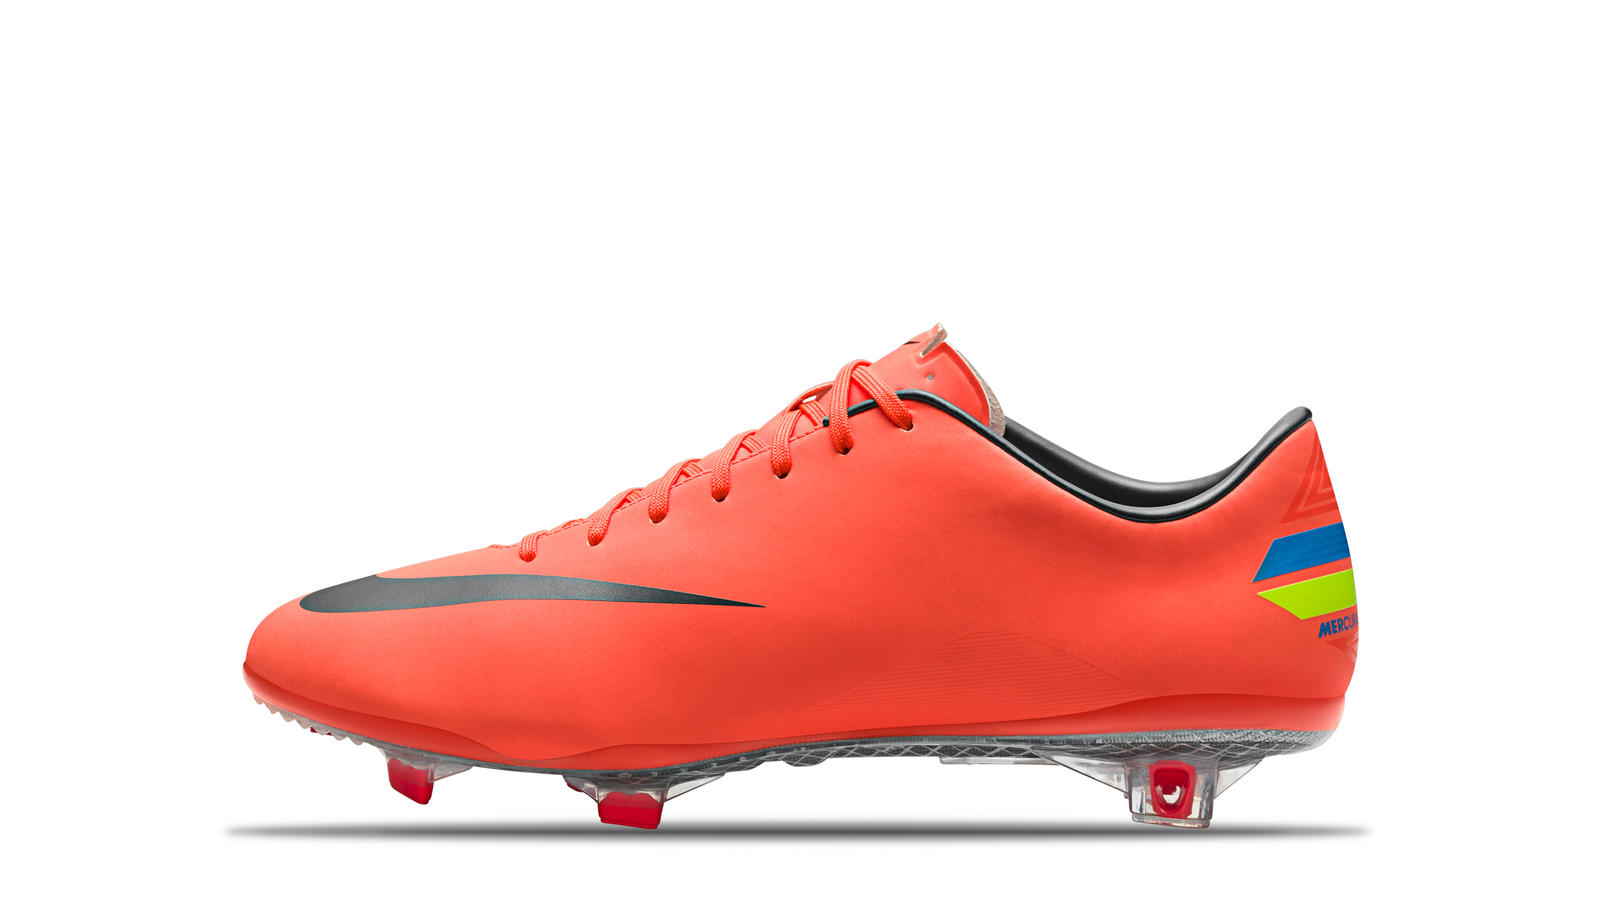 2012 Mercurial Vapor Super fly Max Orange Abyss Metalic Platinum